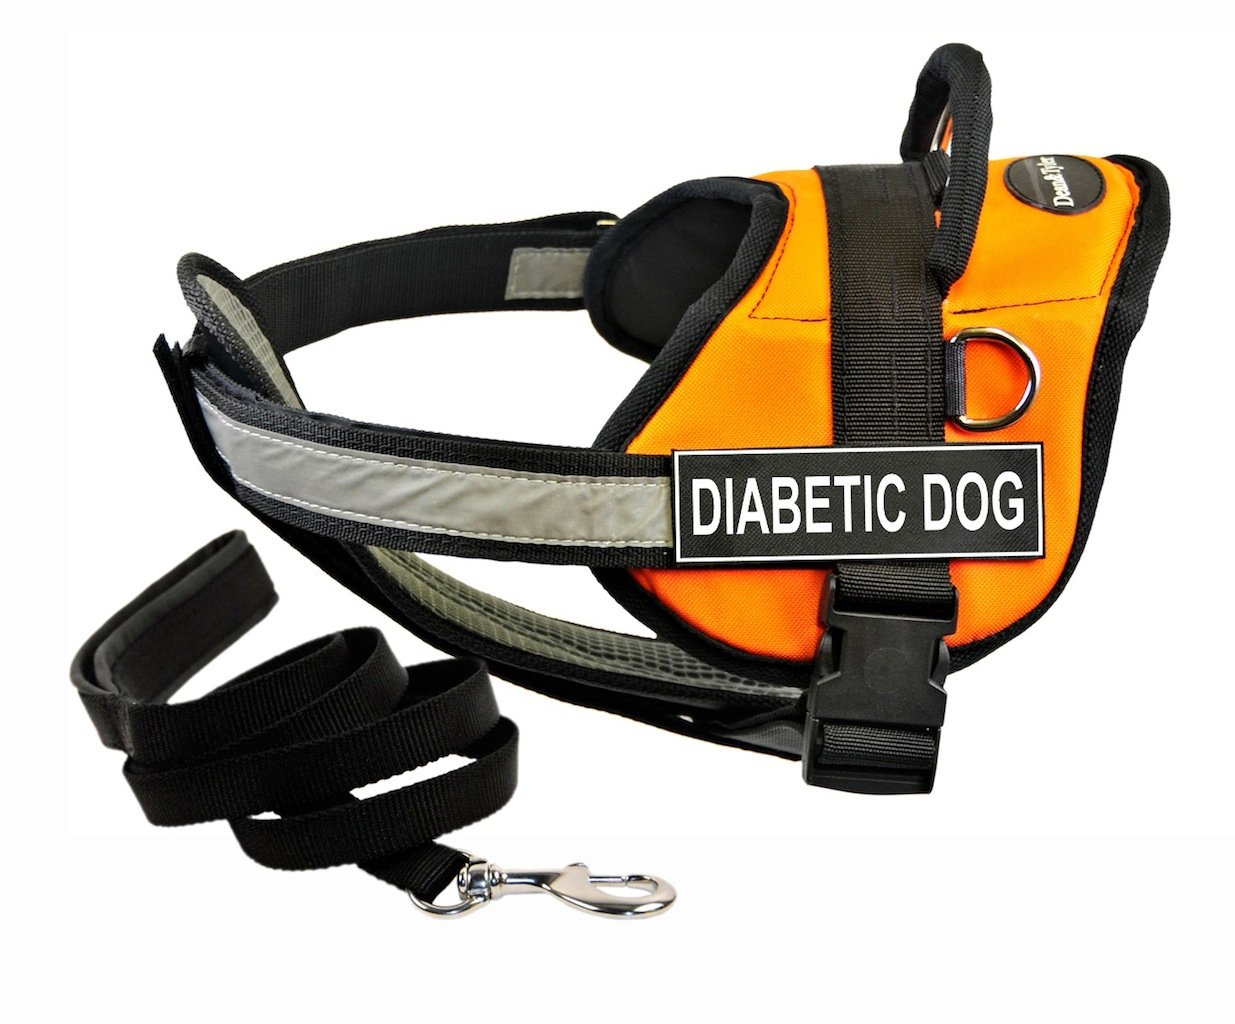 Dean & Tyler's DT Works orange Diabetic Dog  Harness with Chest Padding, X-Small, and Black 6 ft Padded Puppy Leash.